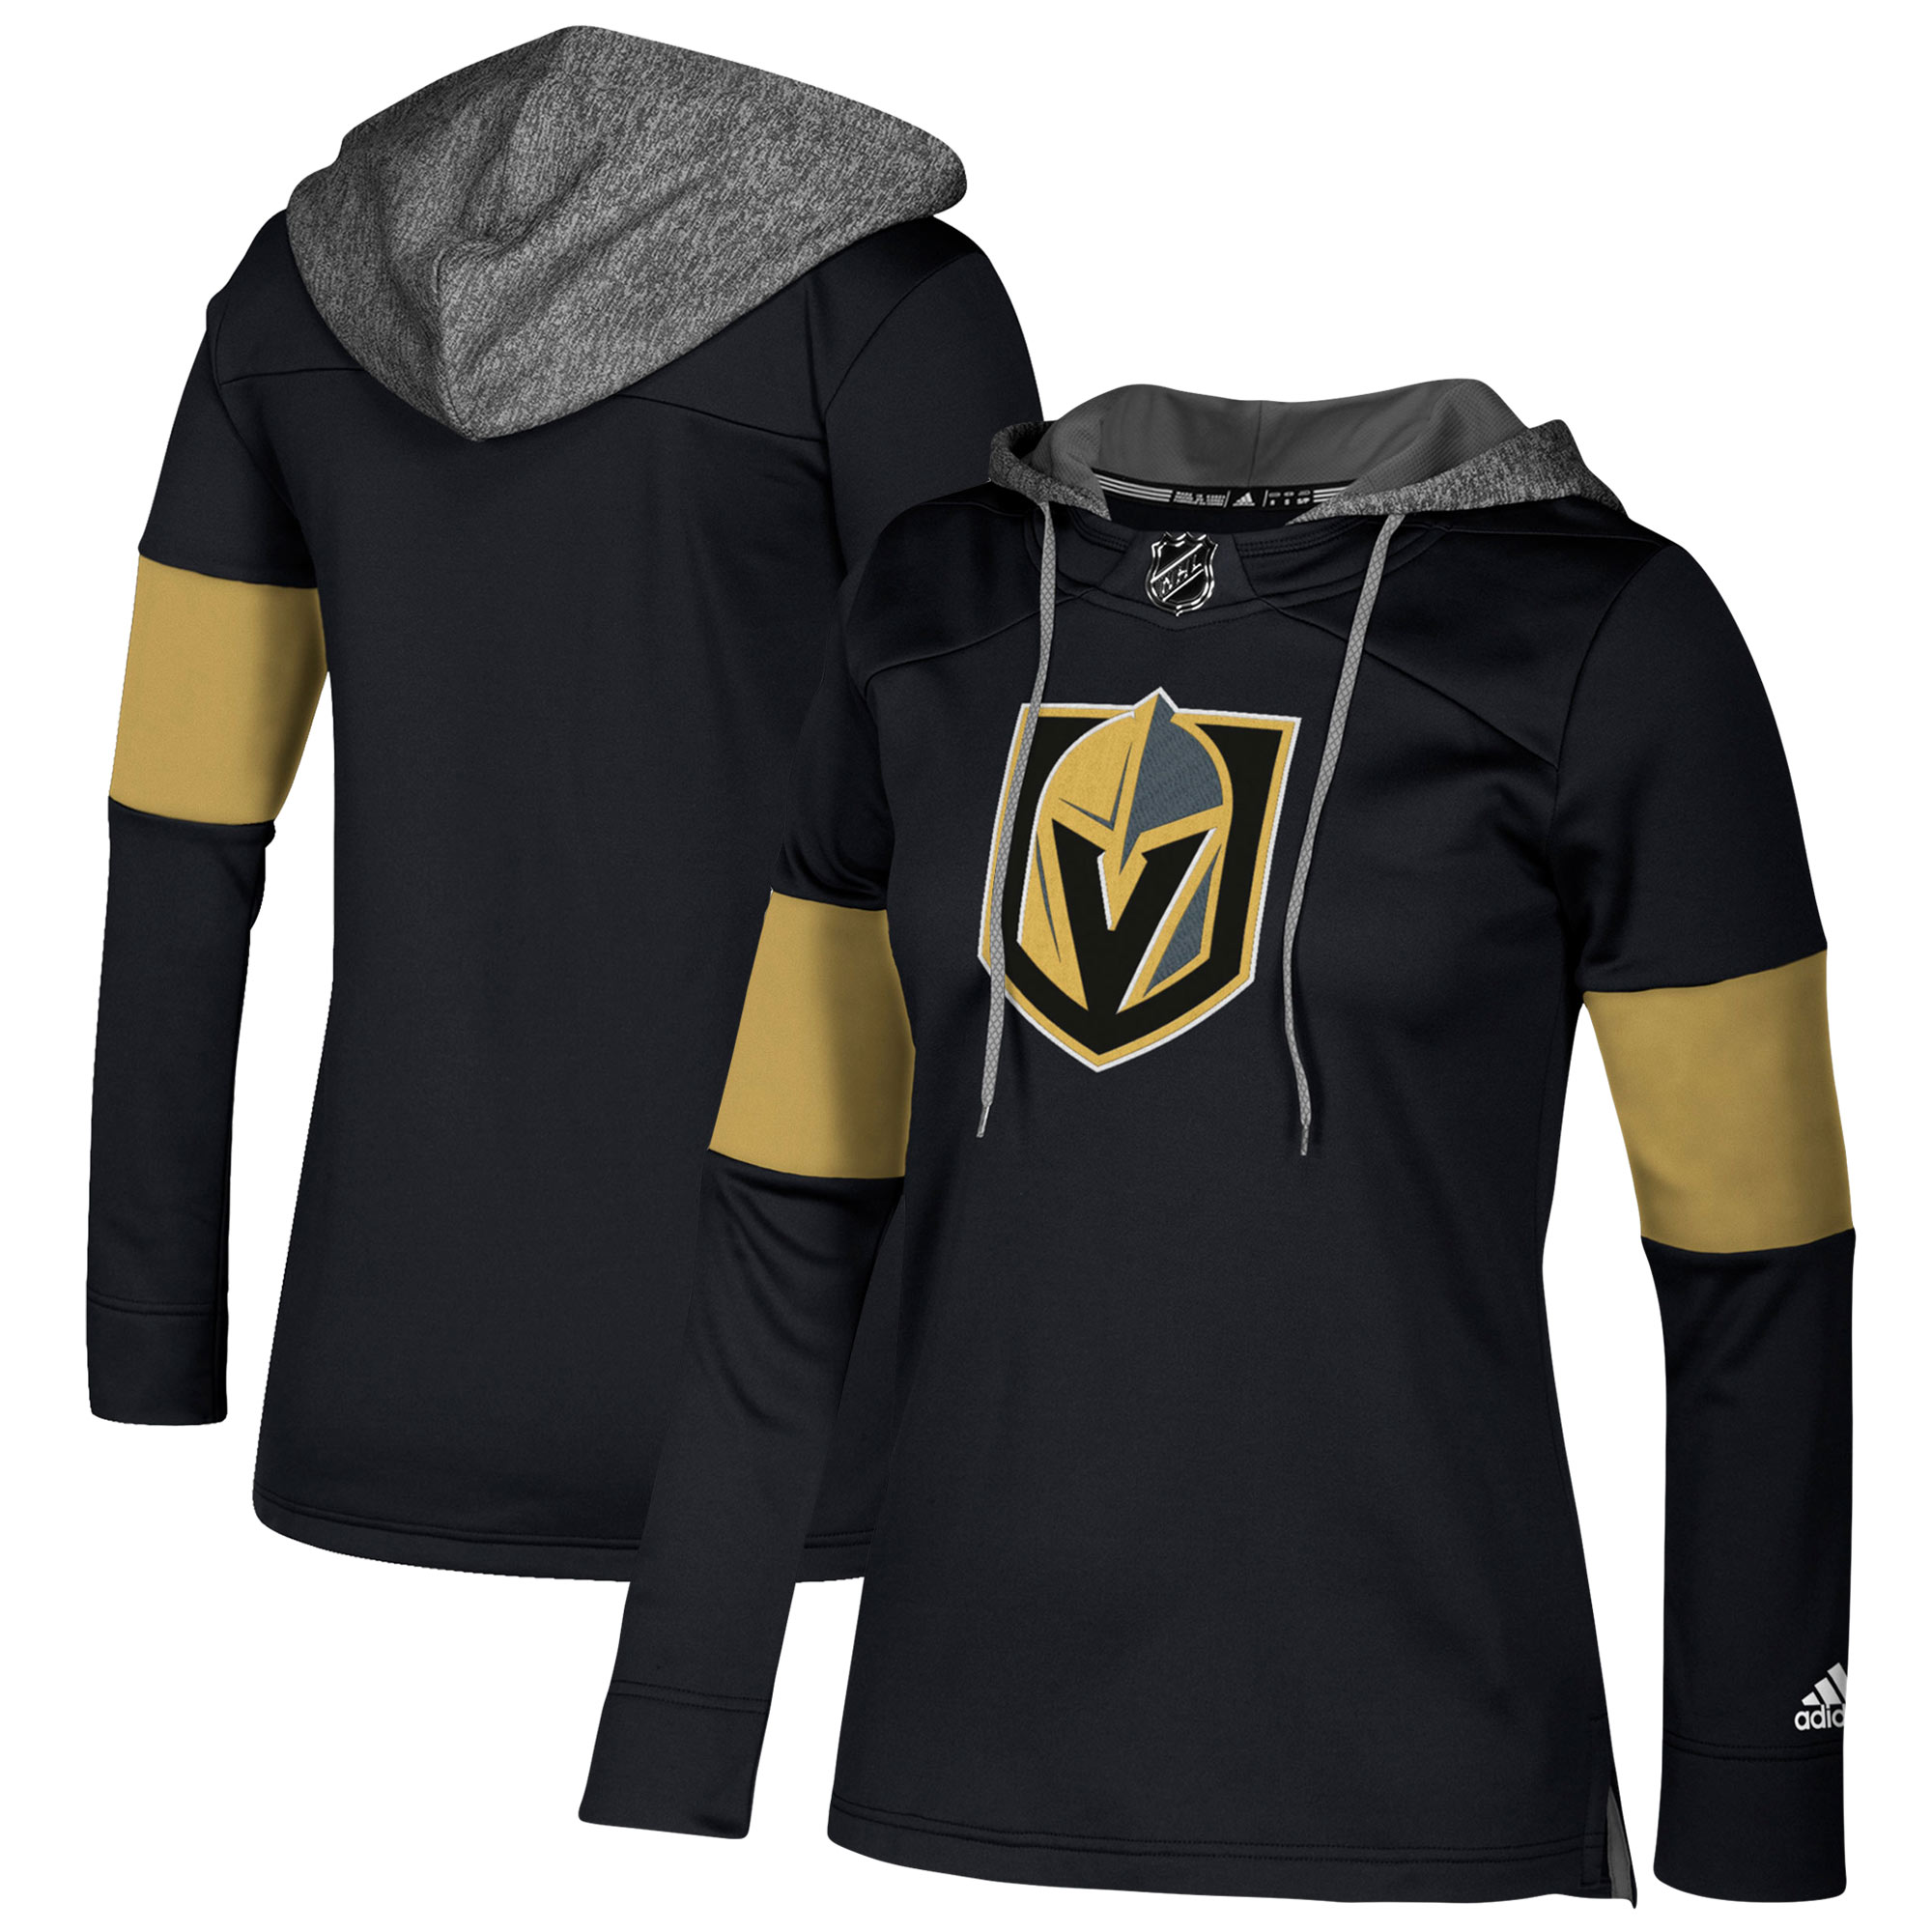 Vegas Golden Knights Black Women's Customized All Stitched Hooded Sweatshirt